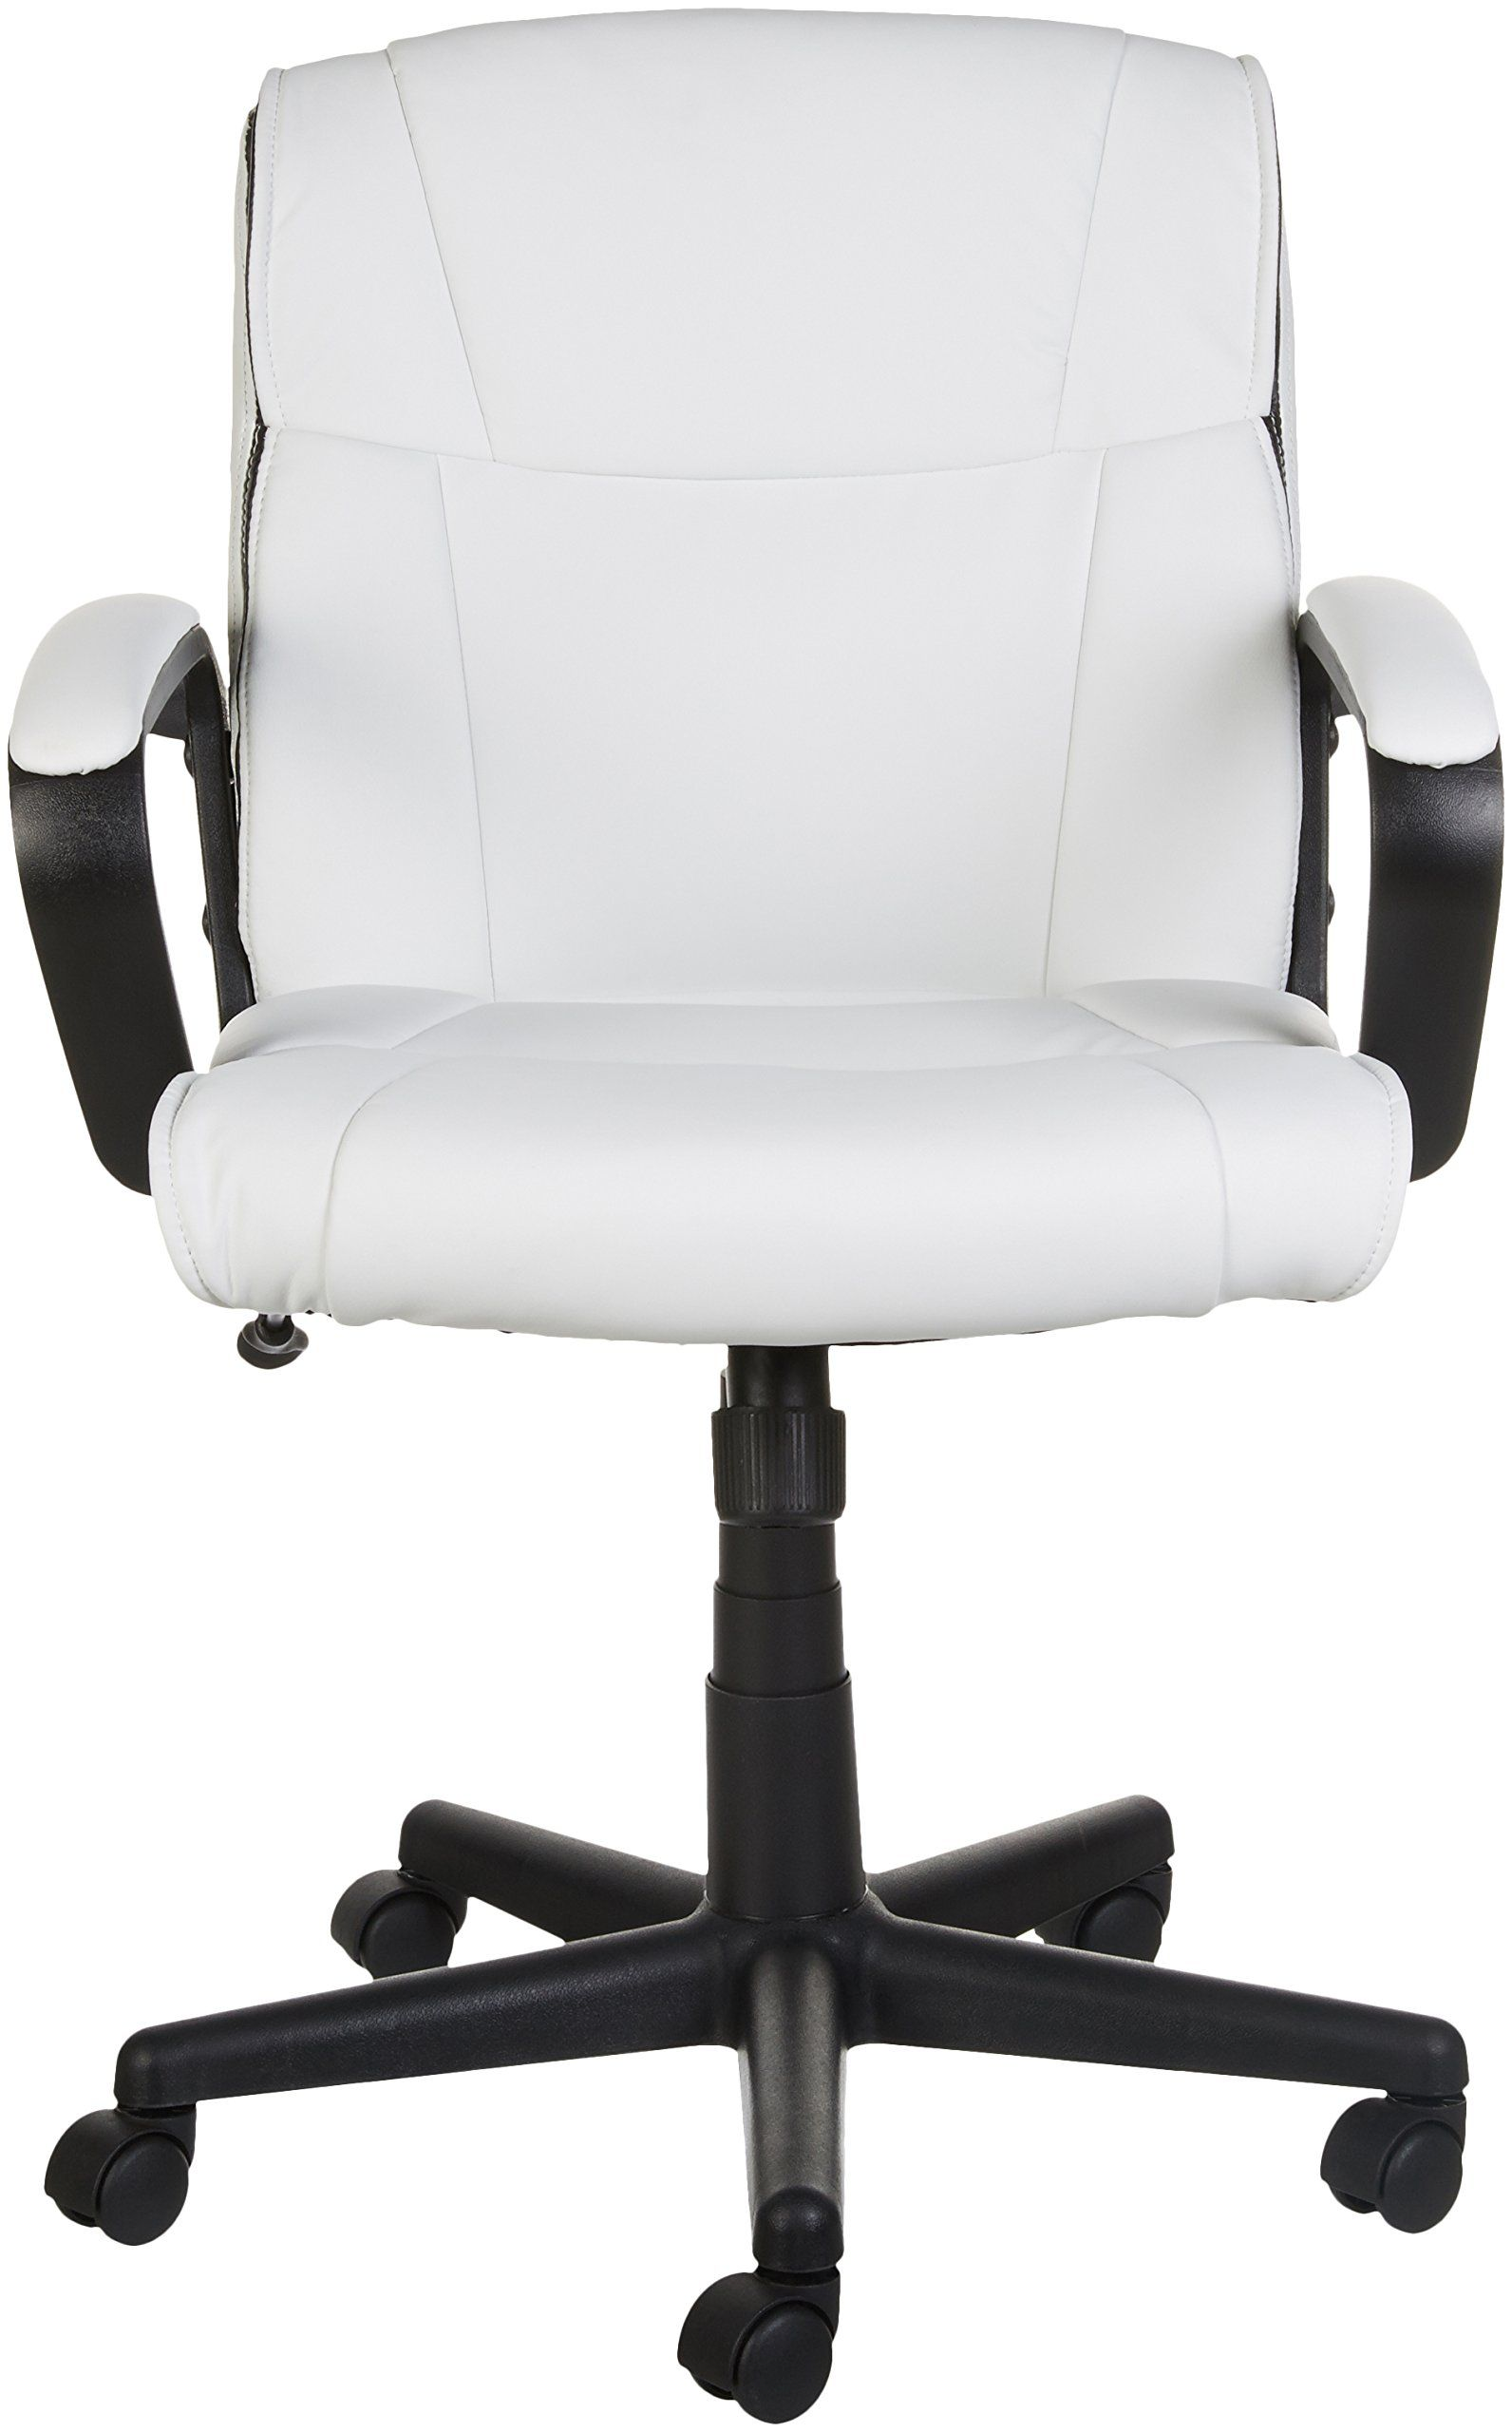 Amazon Basics Mid Back Office Chair